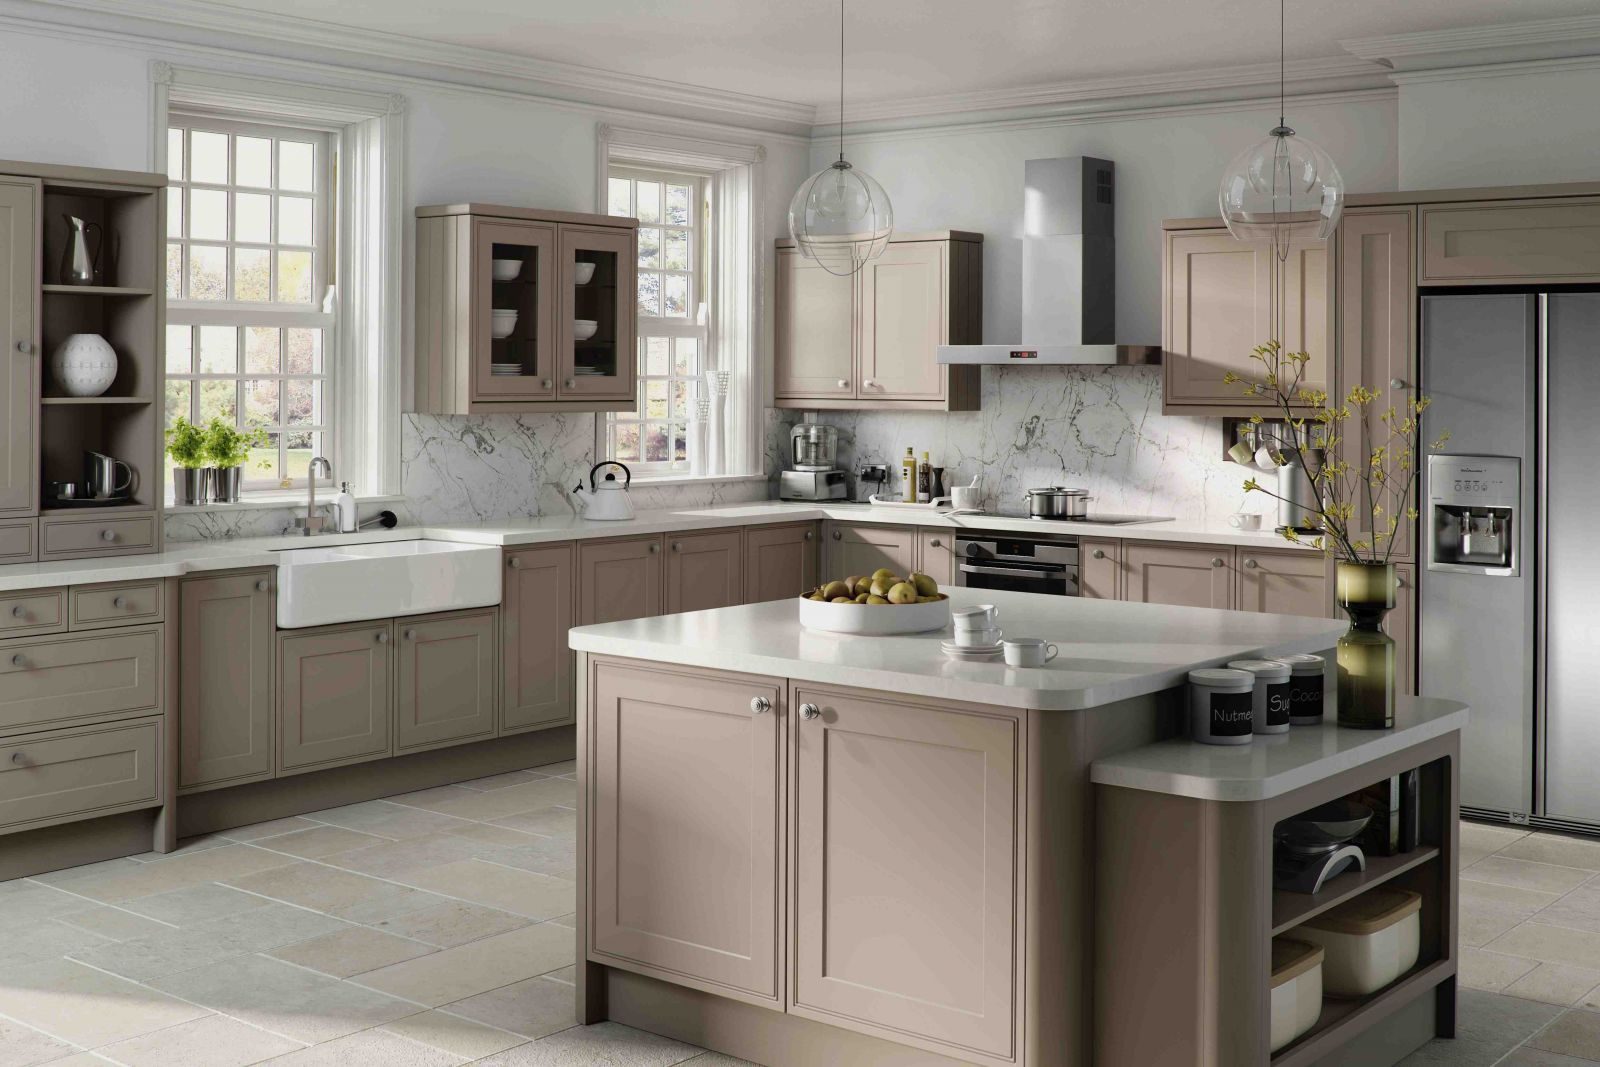 Taupe Quartz Countertop Taupe Kitchen Cabinets And White Countertops